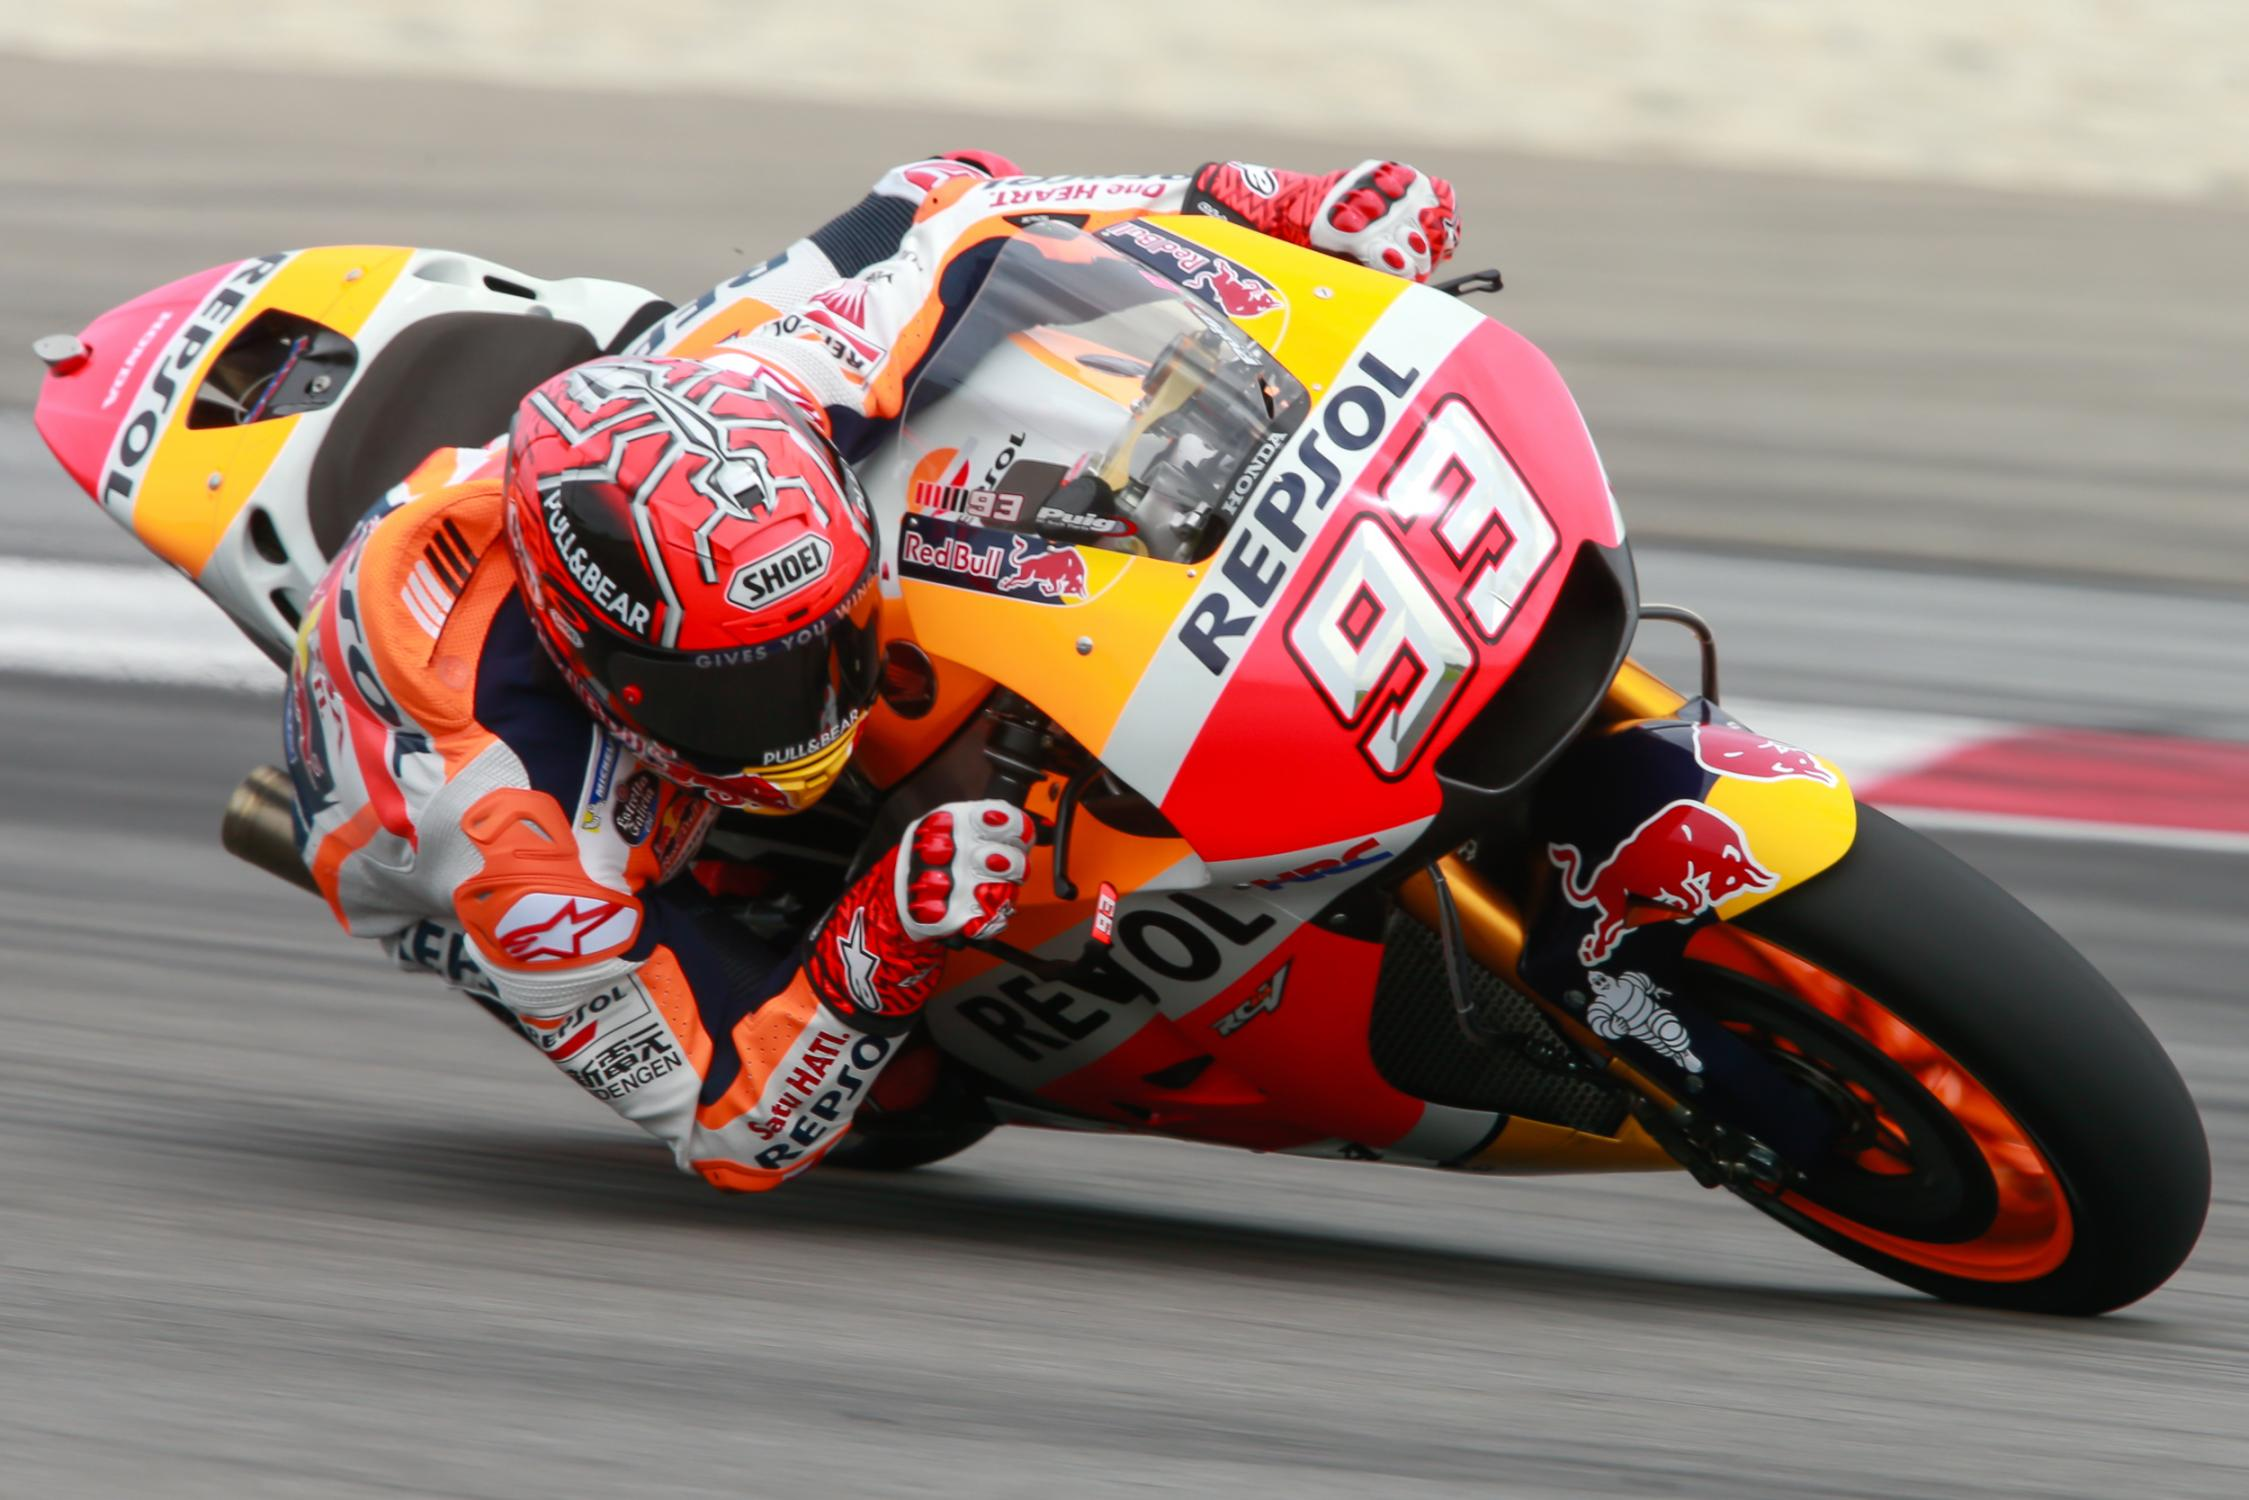 [MotoGP] Test Sepang 93-marc-marquez-esp_gp_0201.gallery_full_top_fullscreen